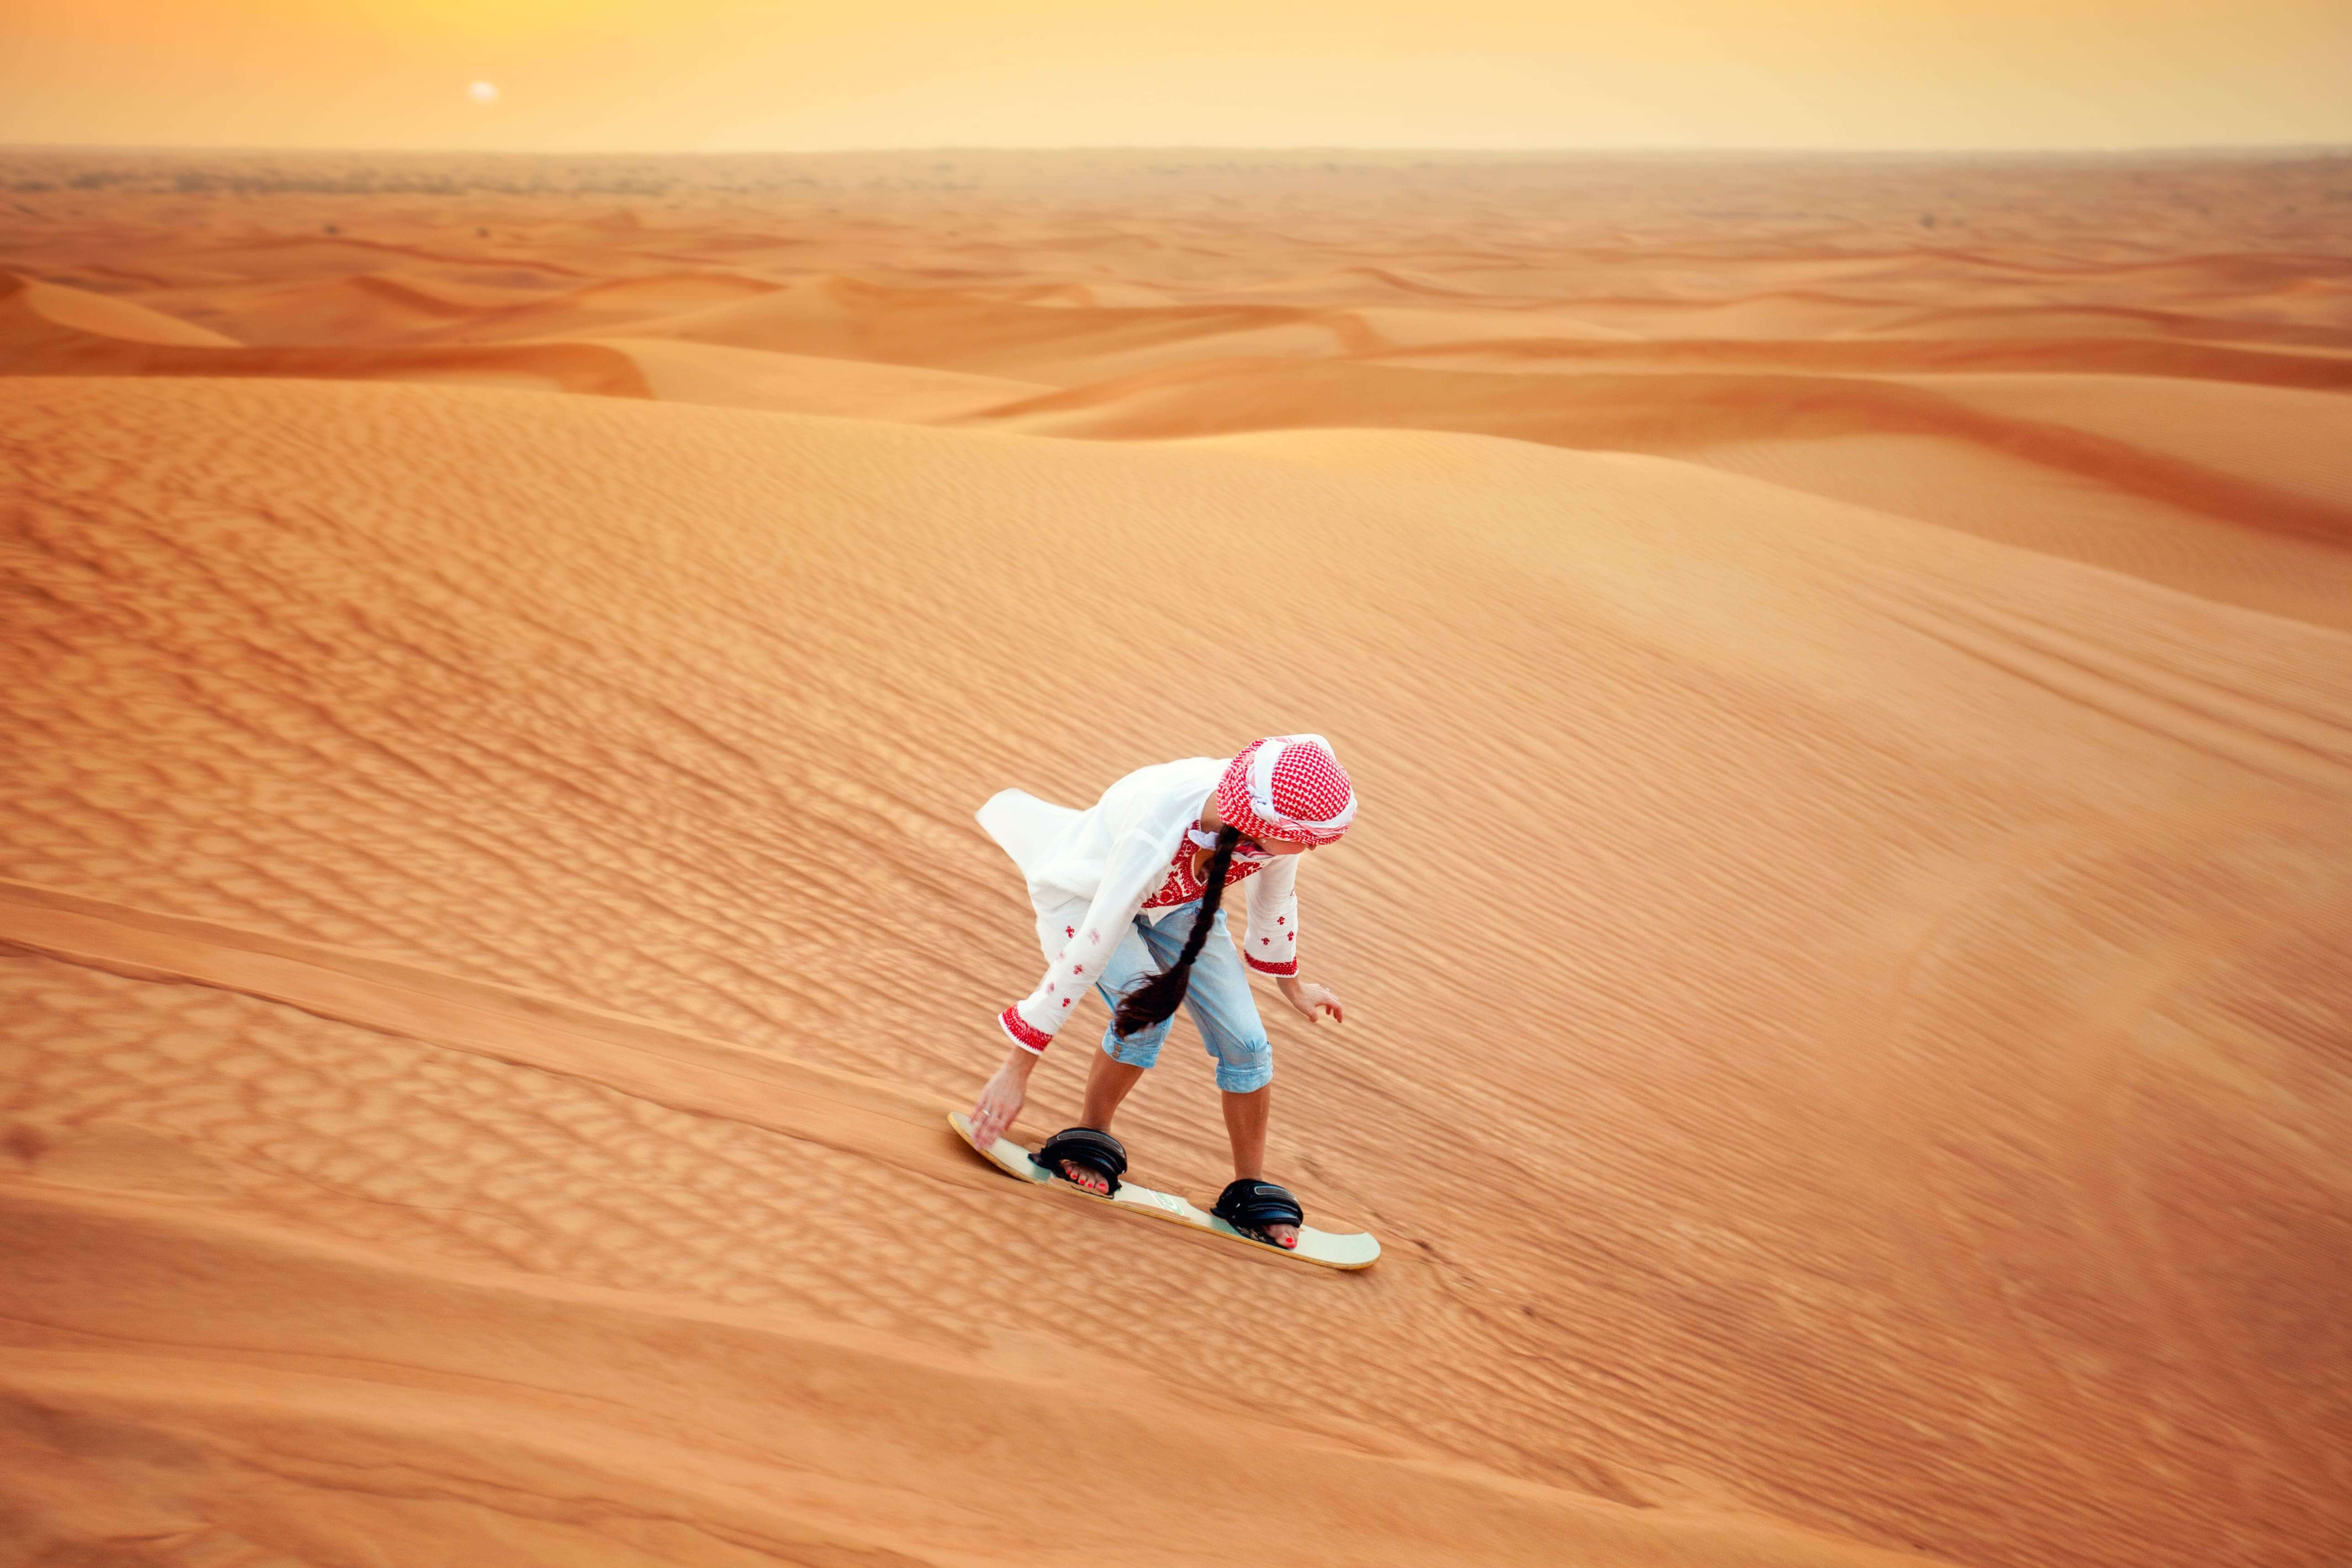 Desert Safari + Dubai City Tour + Dhow Dinner Cruise Trio Tour Package In 2 Days!